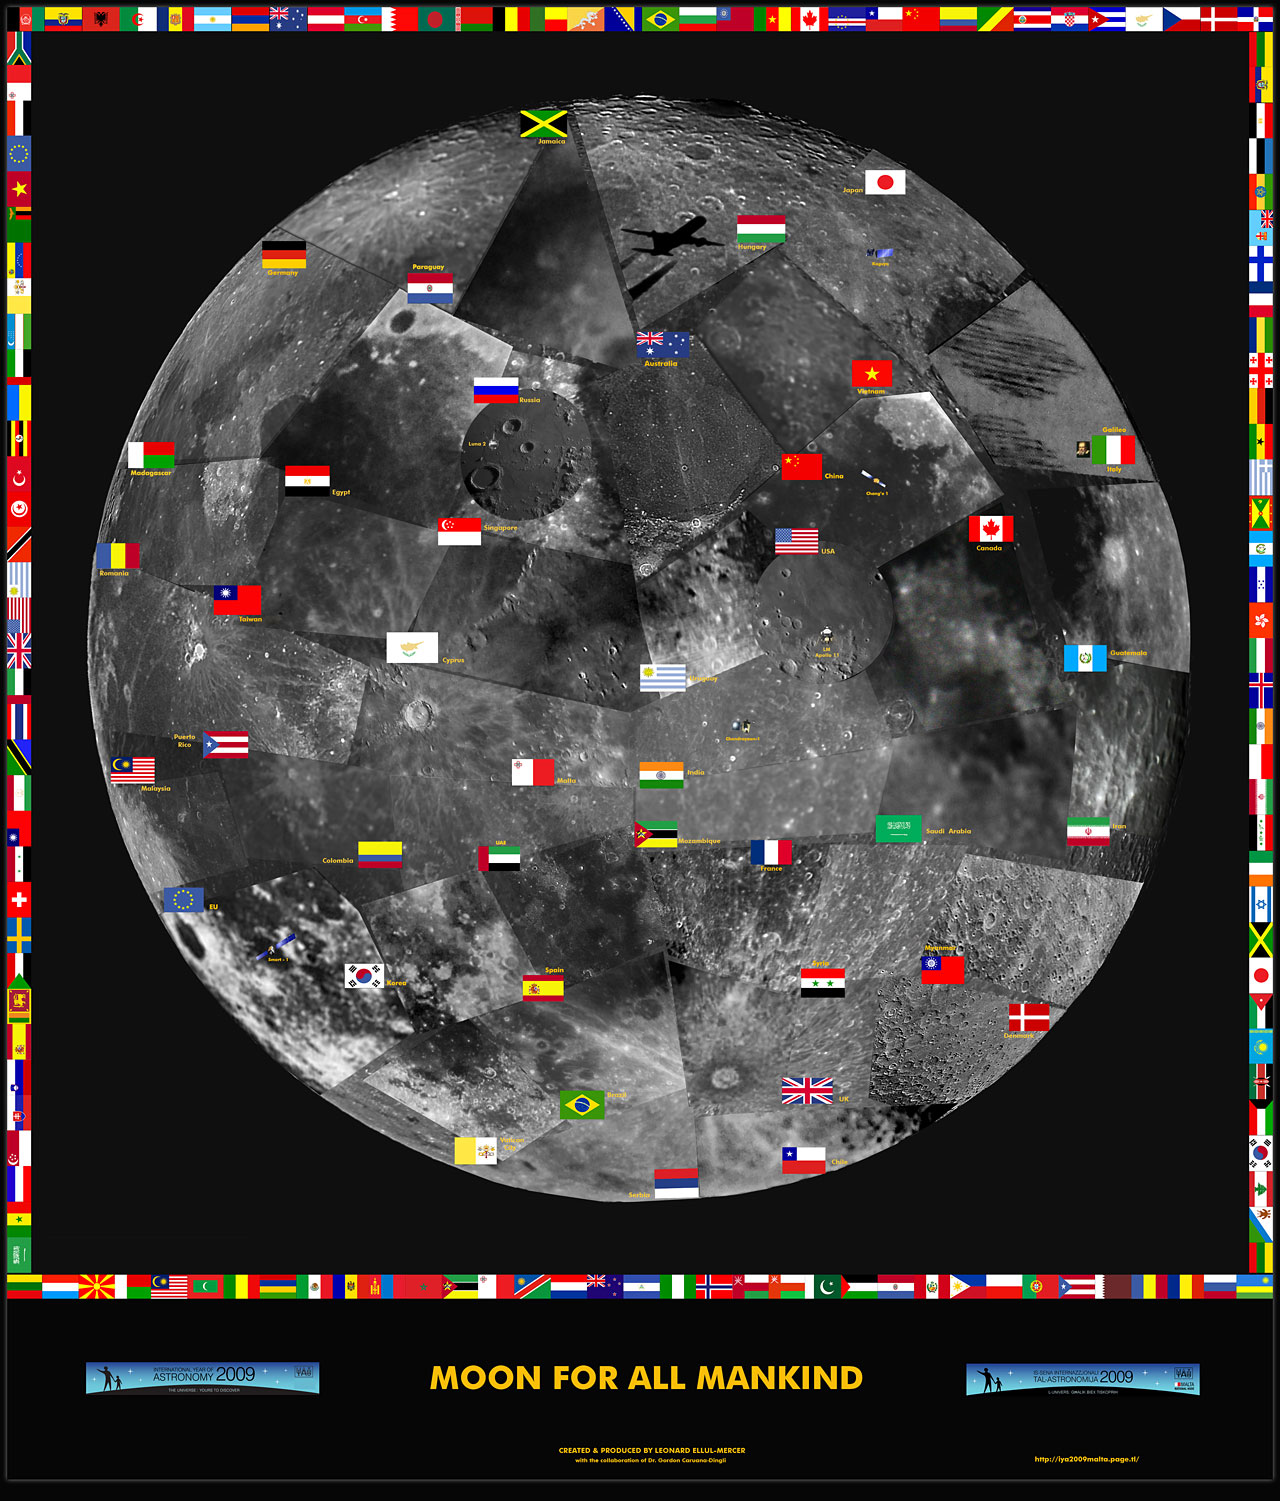 mission 2 luna moon - photo #37